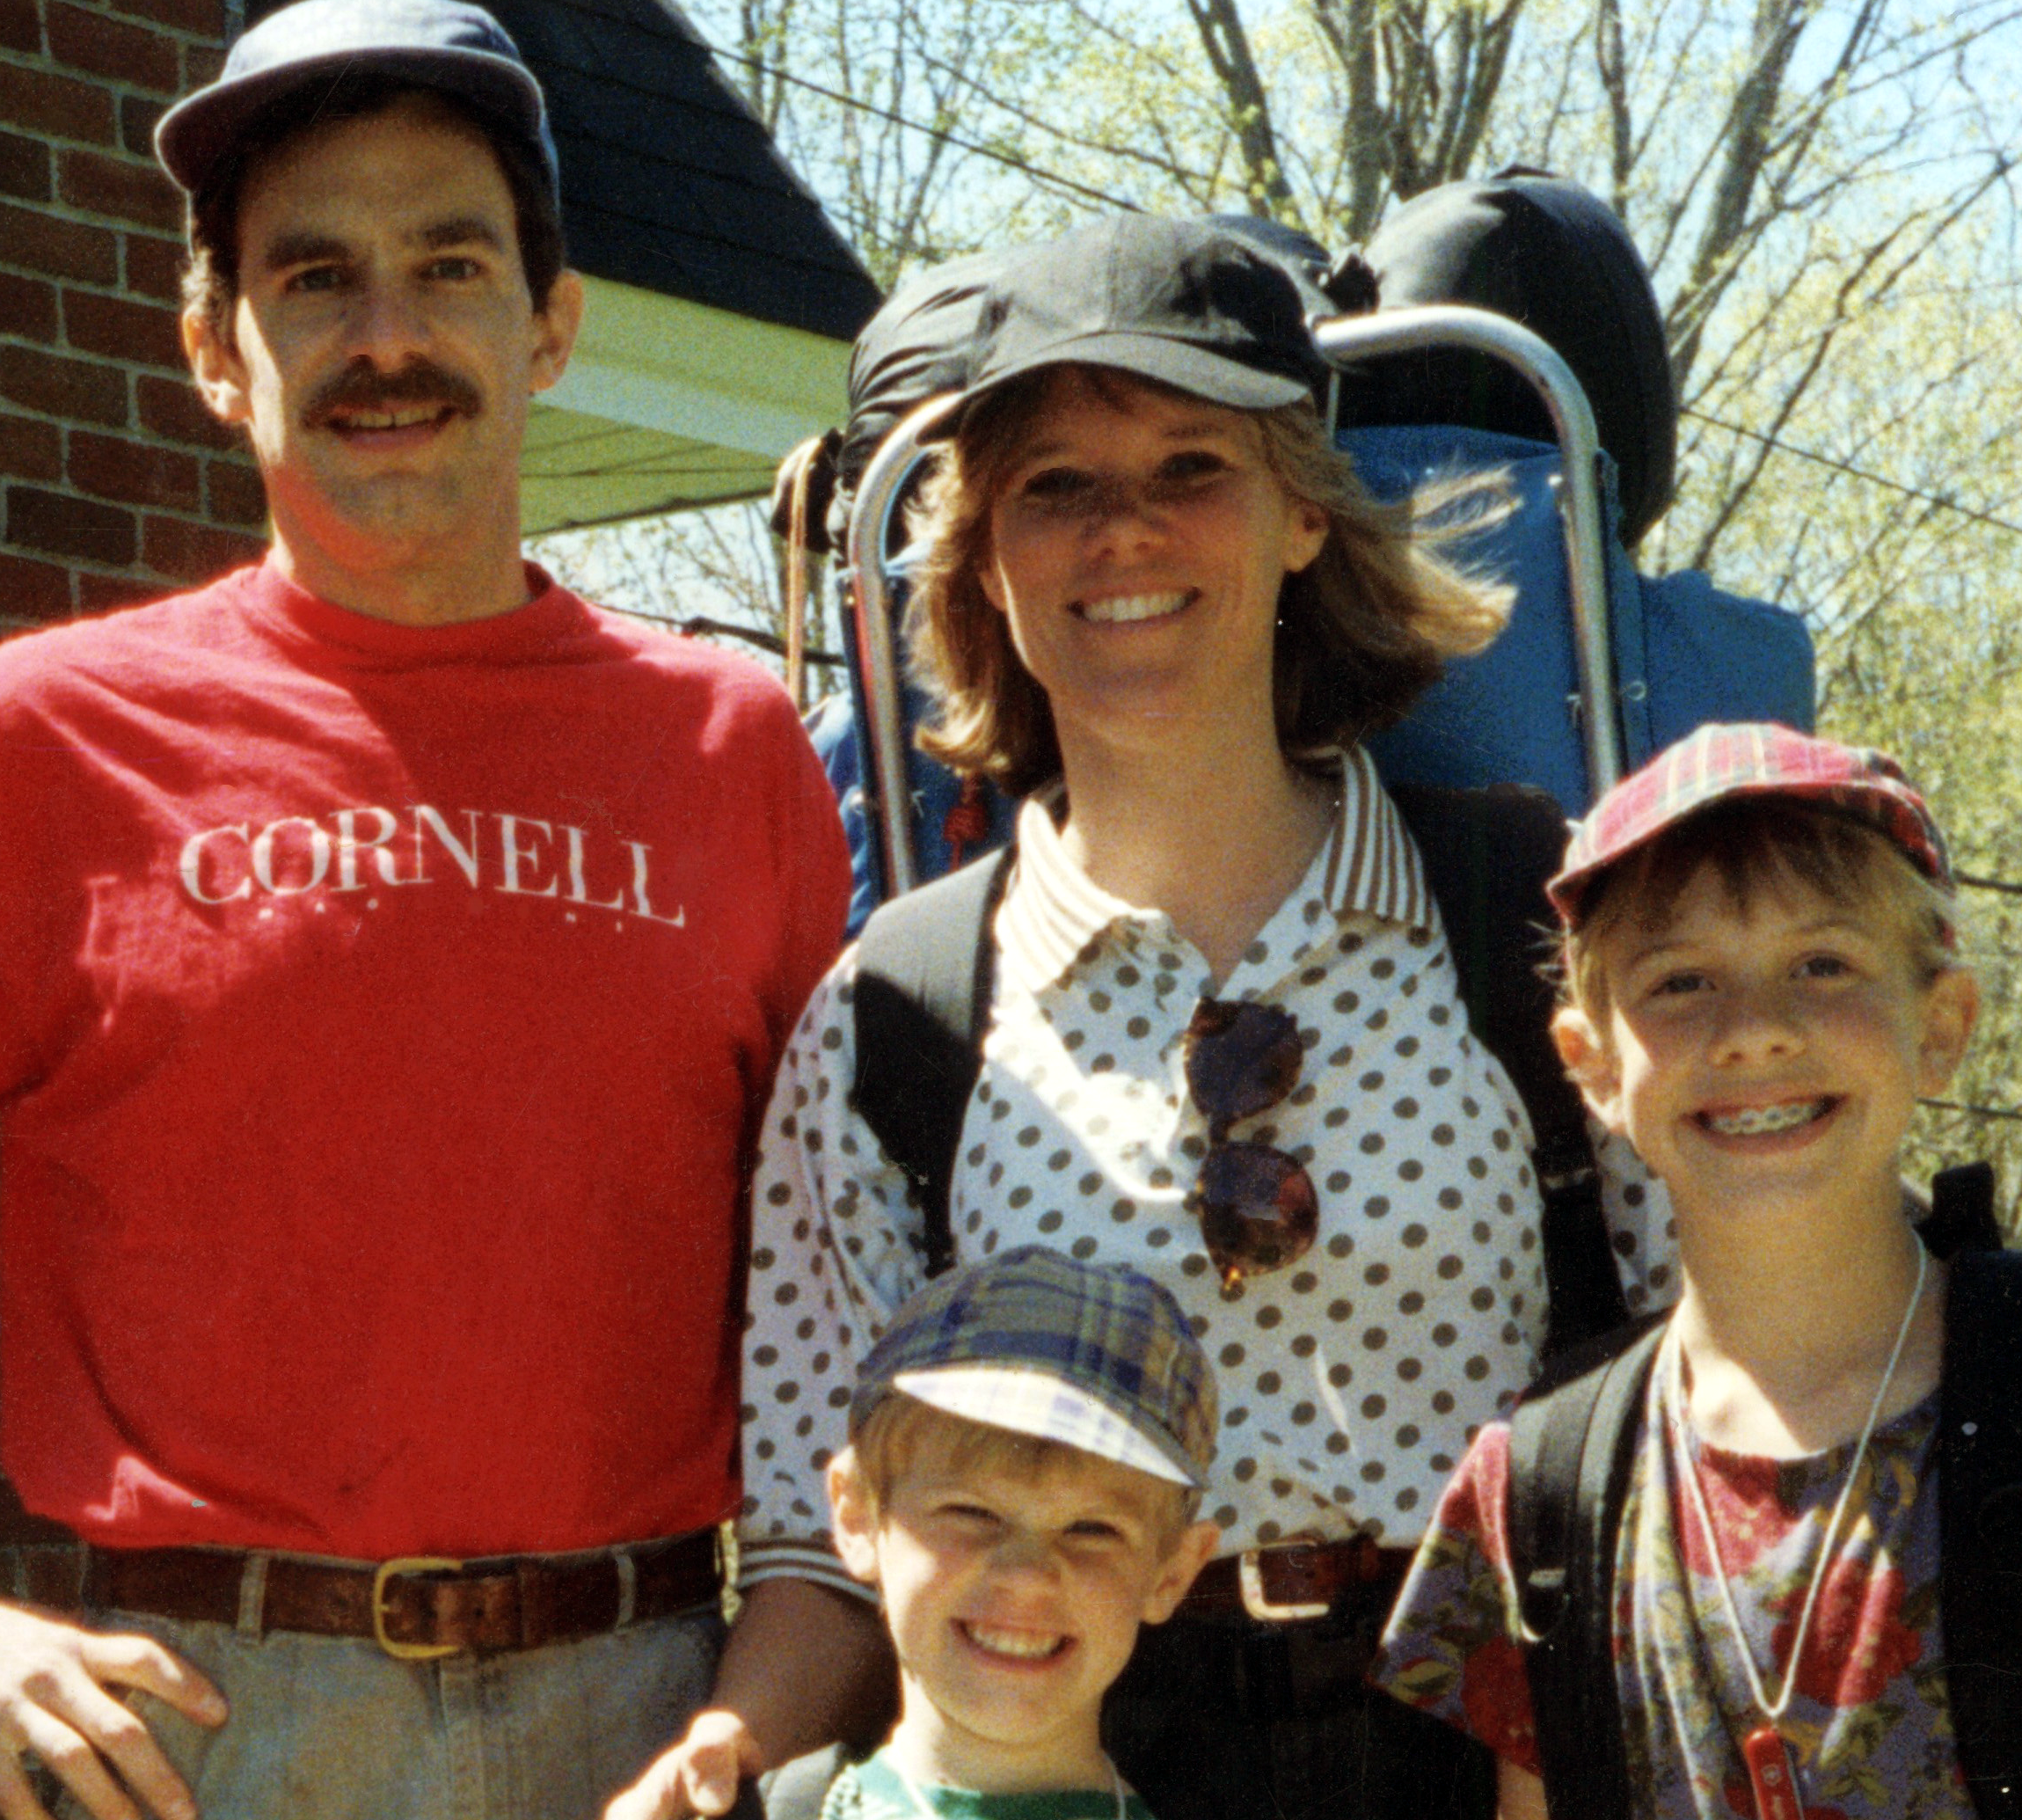 Twenty years ago, the Appalachian Trail went through our hard. And a mustache went through my face.